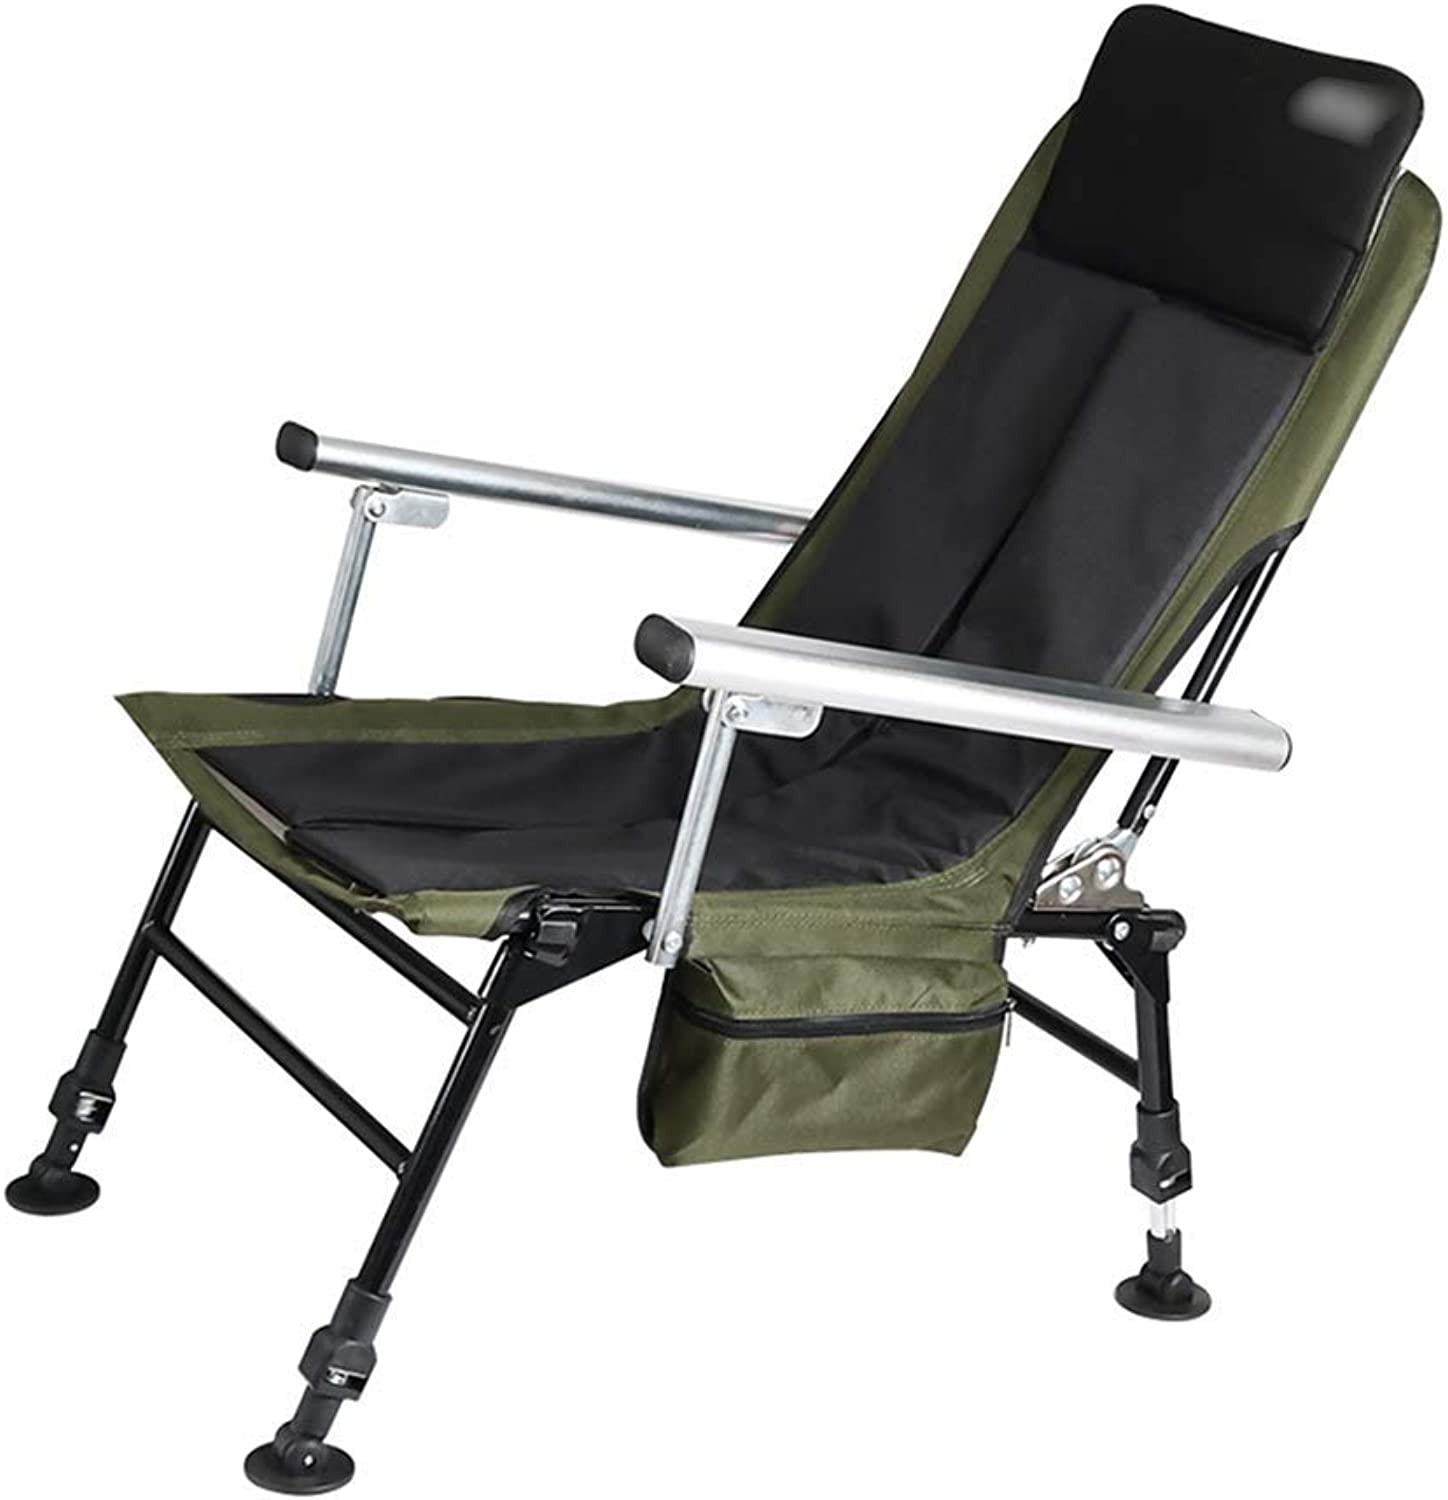 Camping & Hiking Fishing Chair Folding Portable Outdoor Chair Multifunctional European Seat Available in All Seasons Adjustable Height Load 200kg